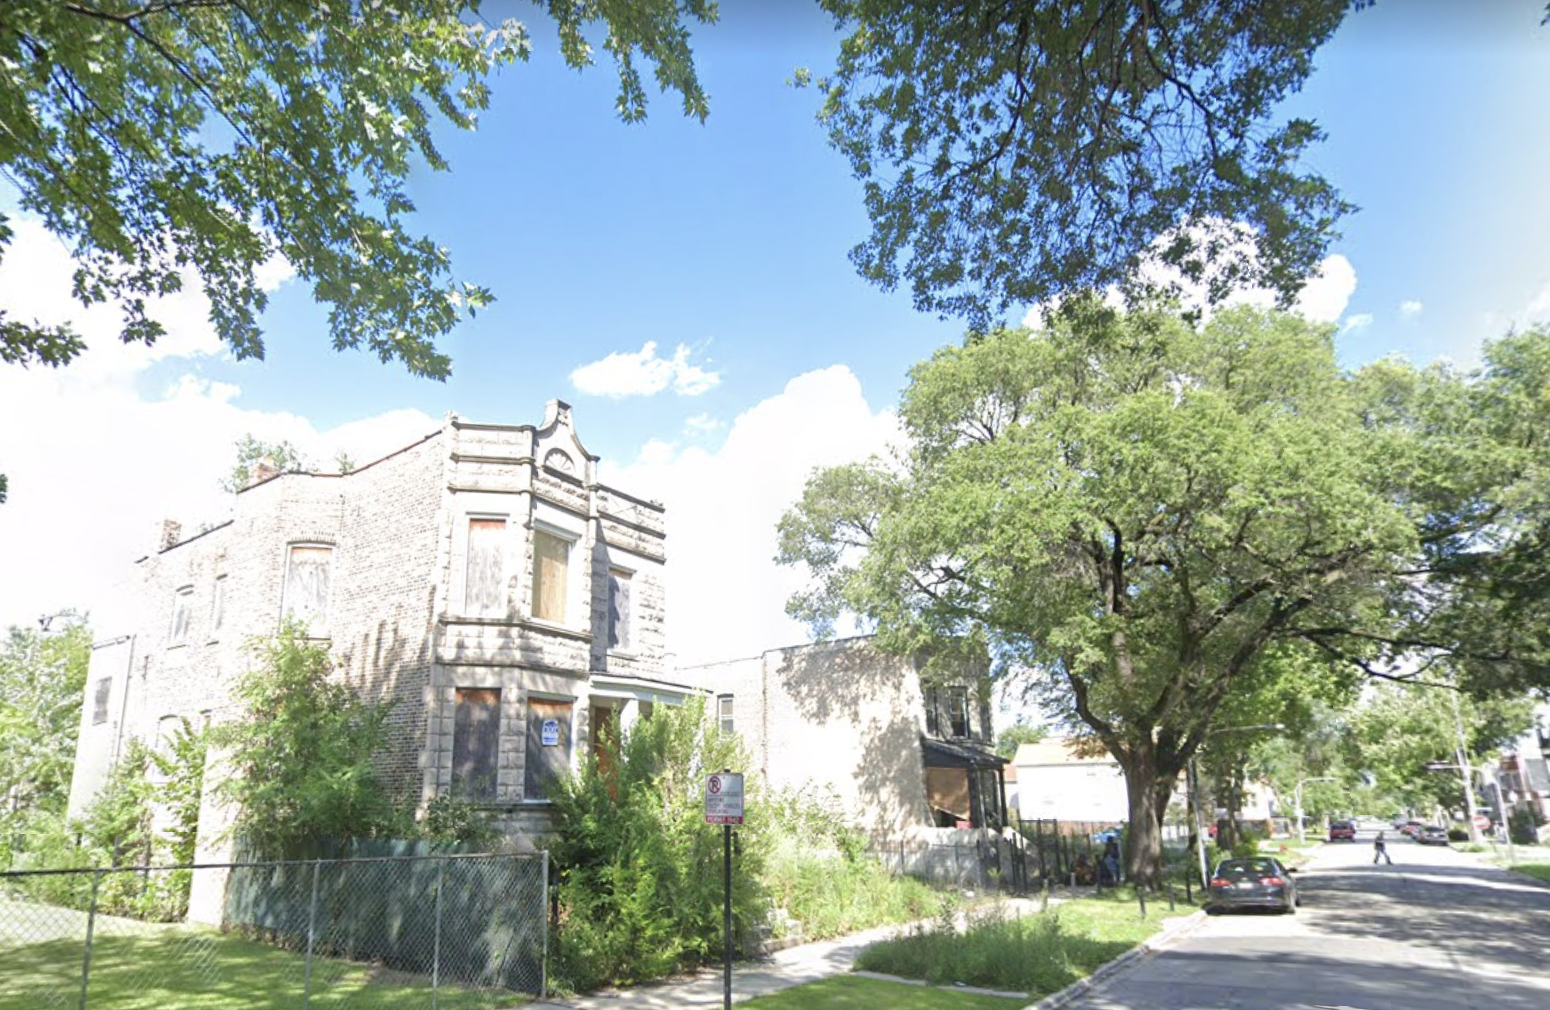 Four people were shot and one killed May 23, 2020, in the 3900 block of West Grenshaw Street.